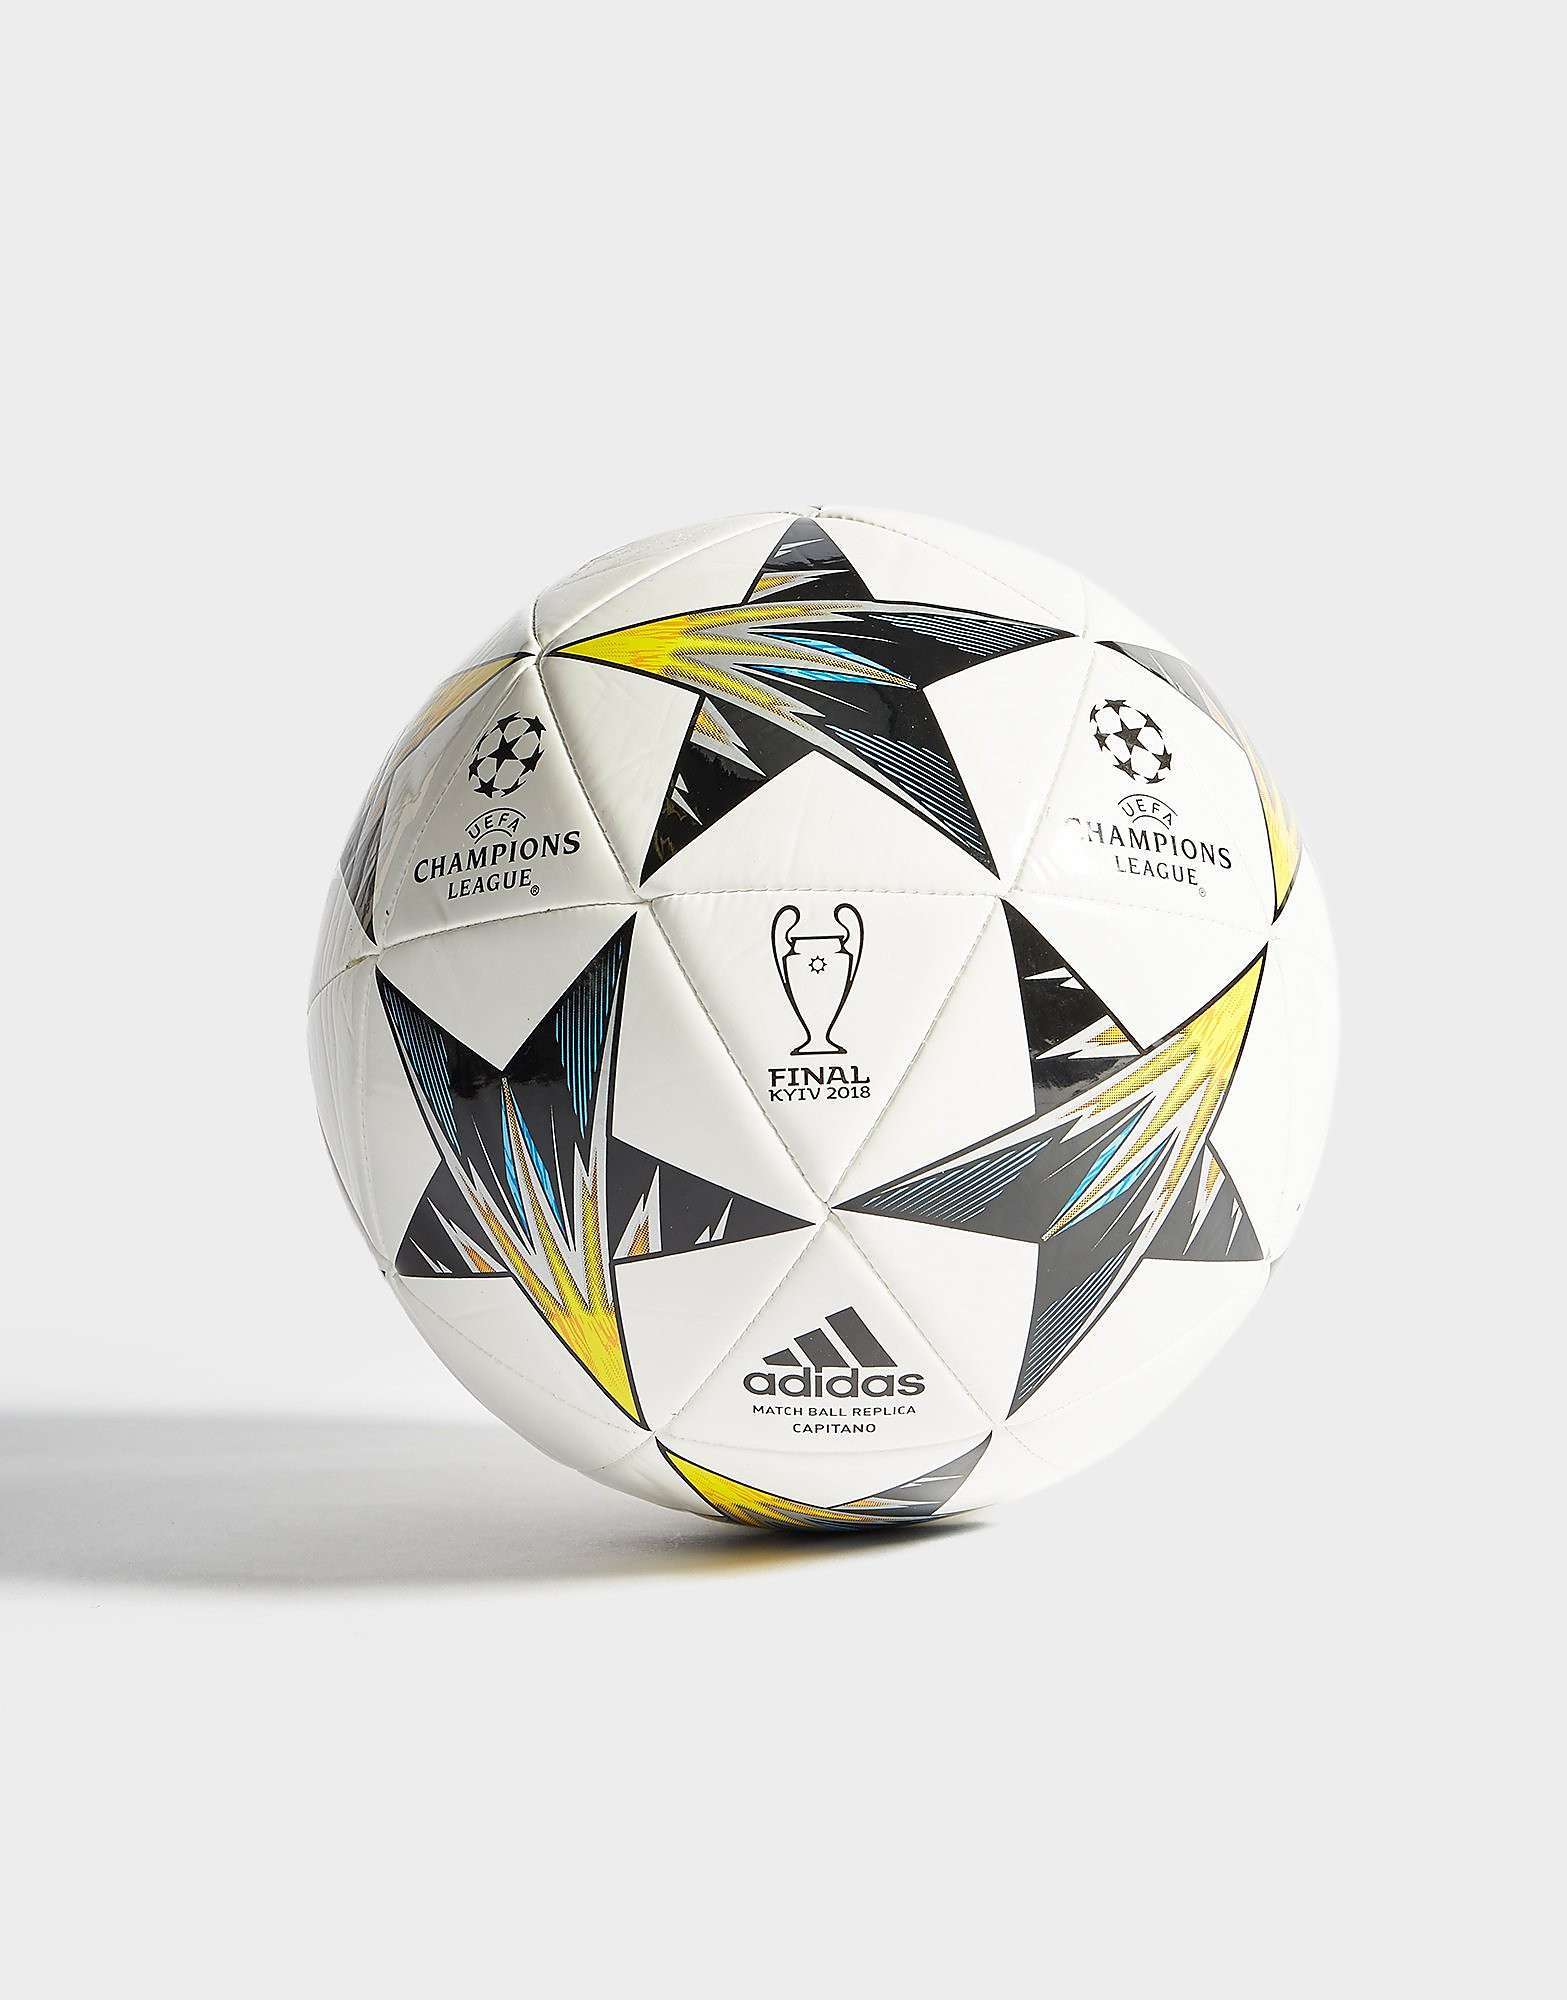 adidas Champion's League 2018 Final Football